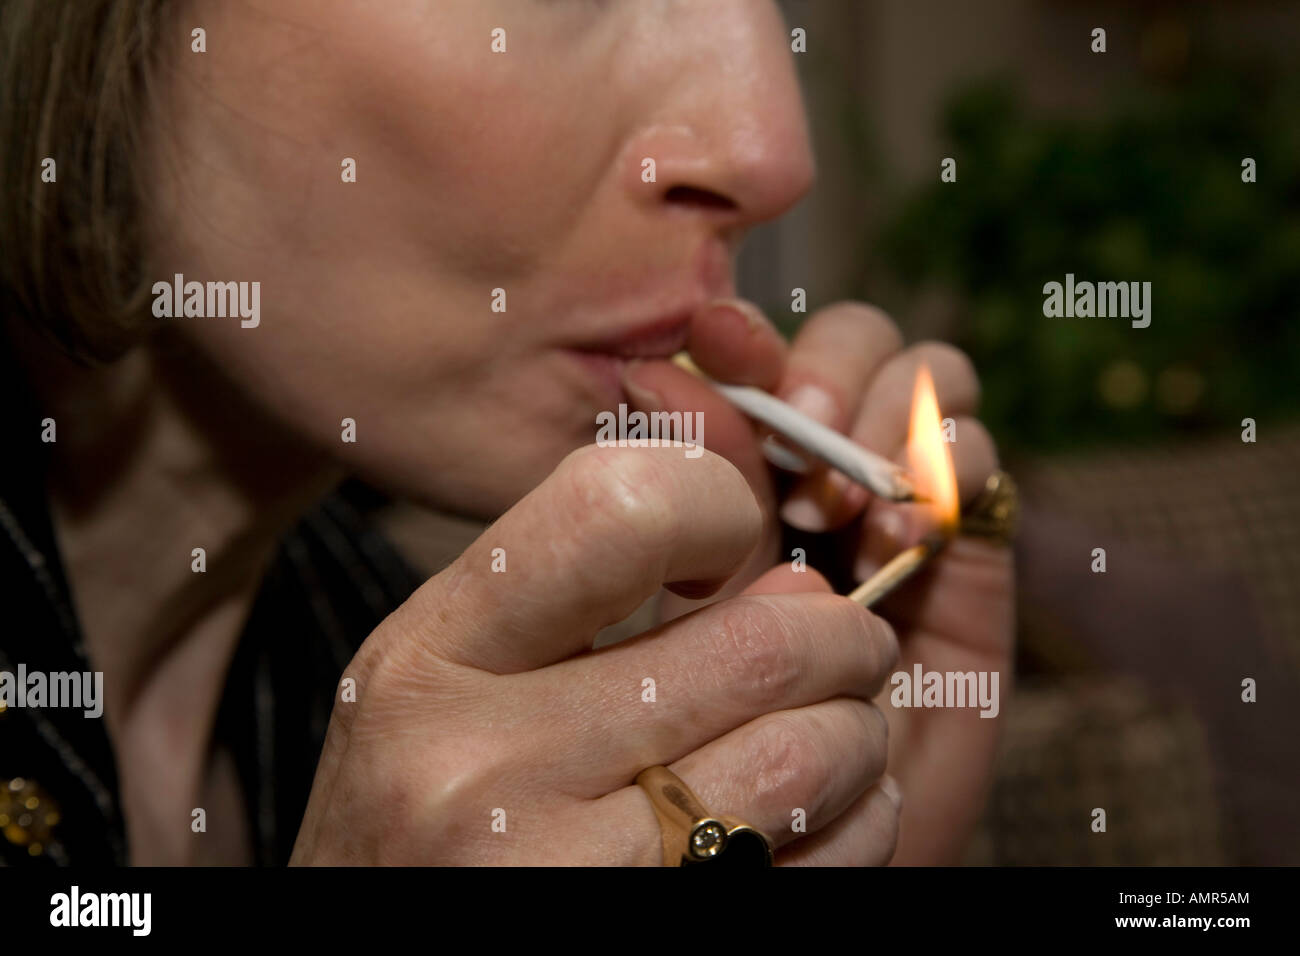 Most popular way of relaxing Woman smoking a joint or marijuana cigarette - Stock Image